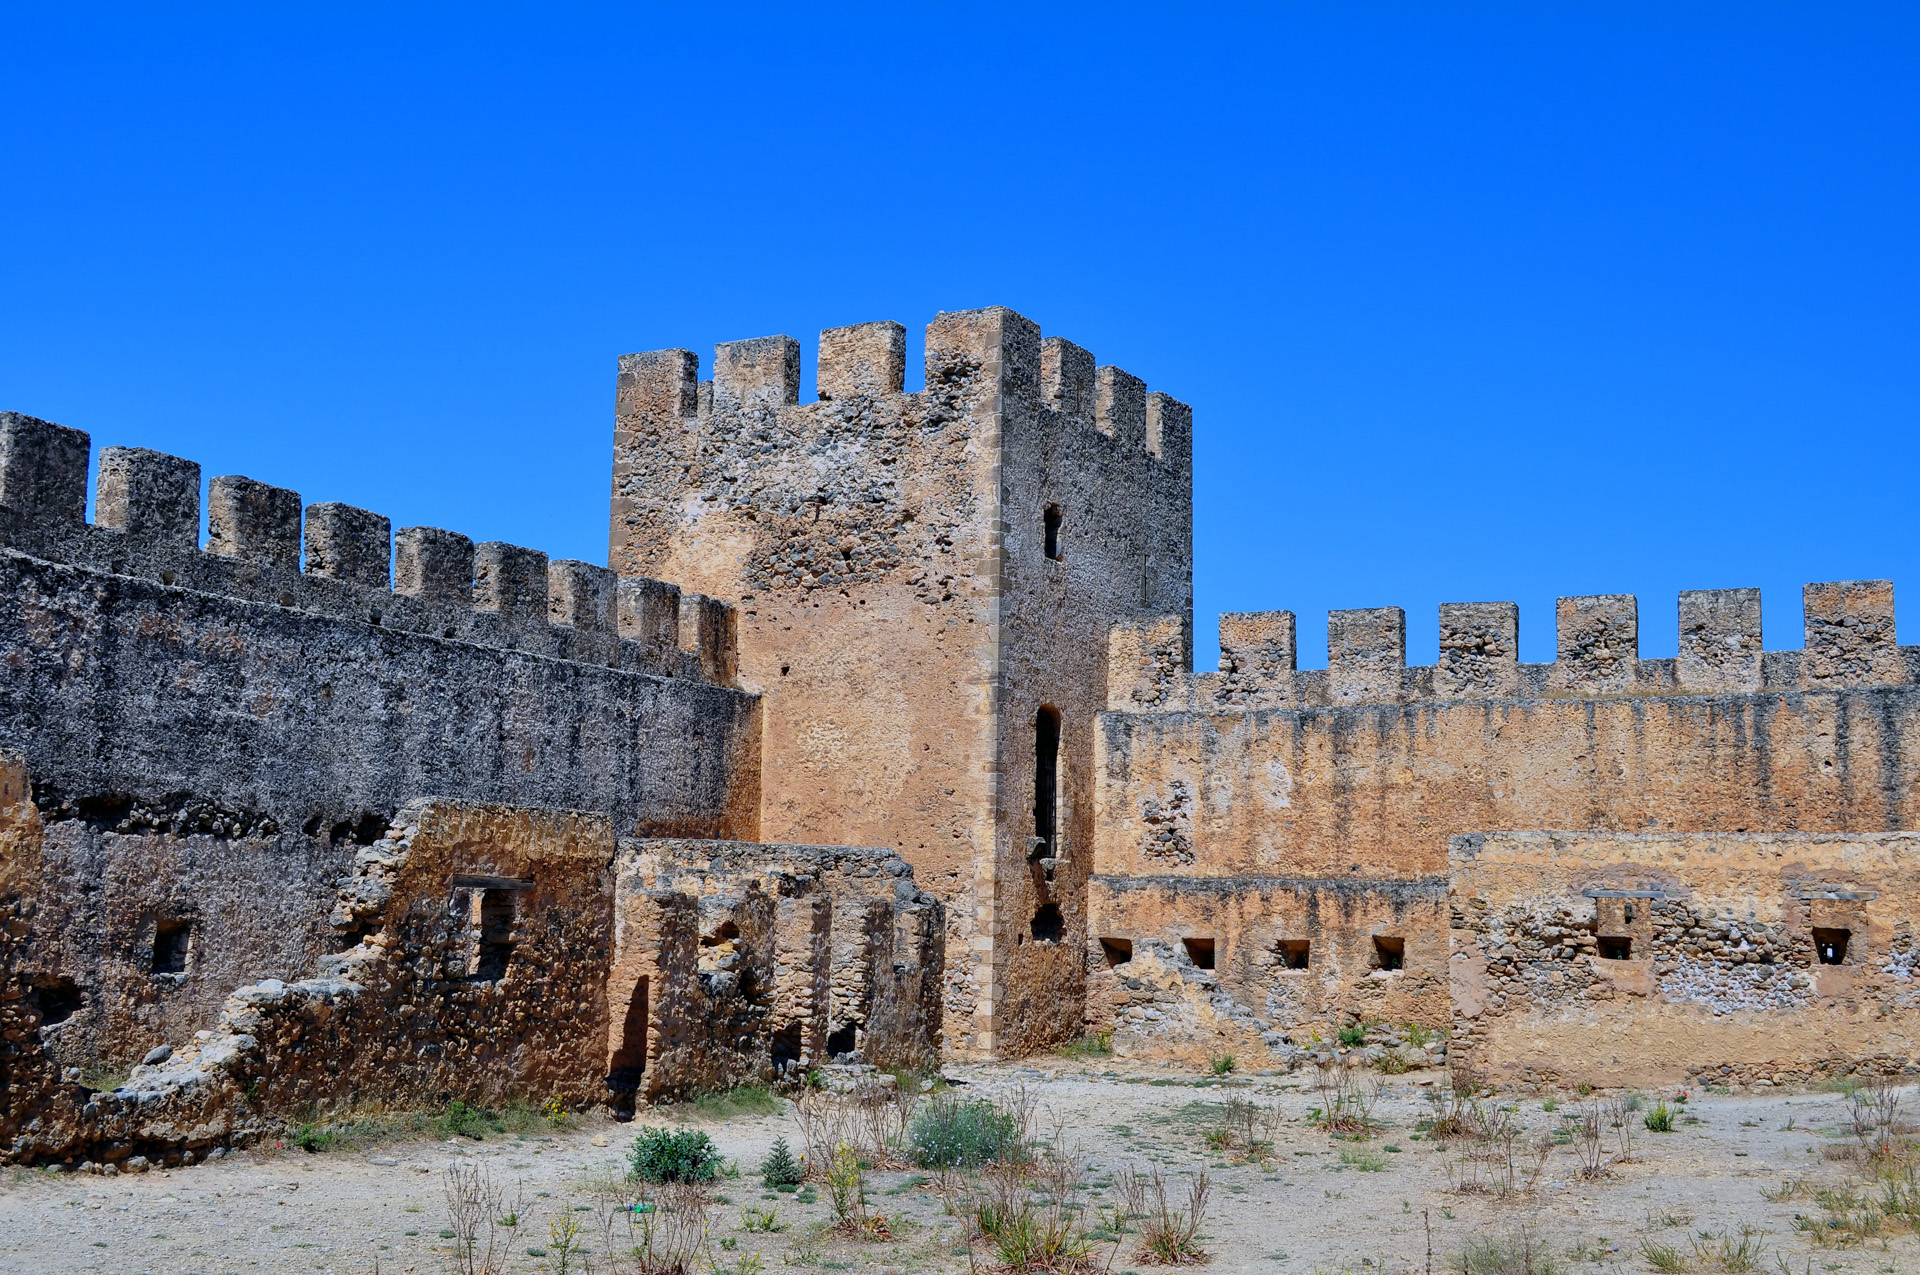 Frangokastello- The Medieval Castle